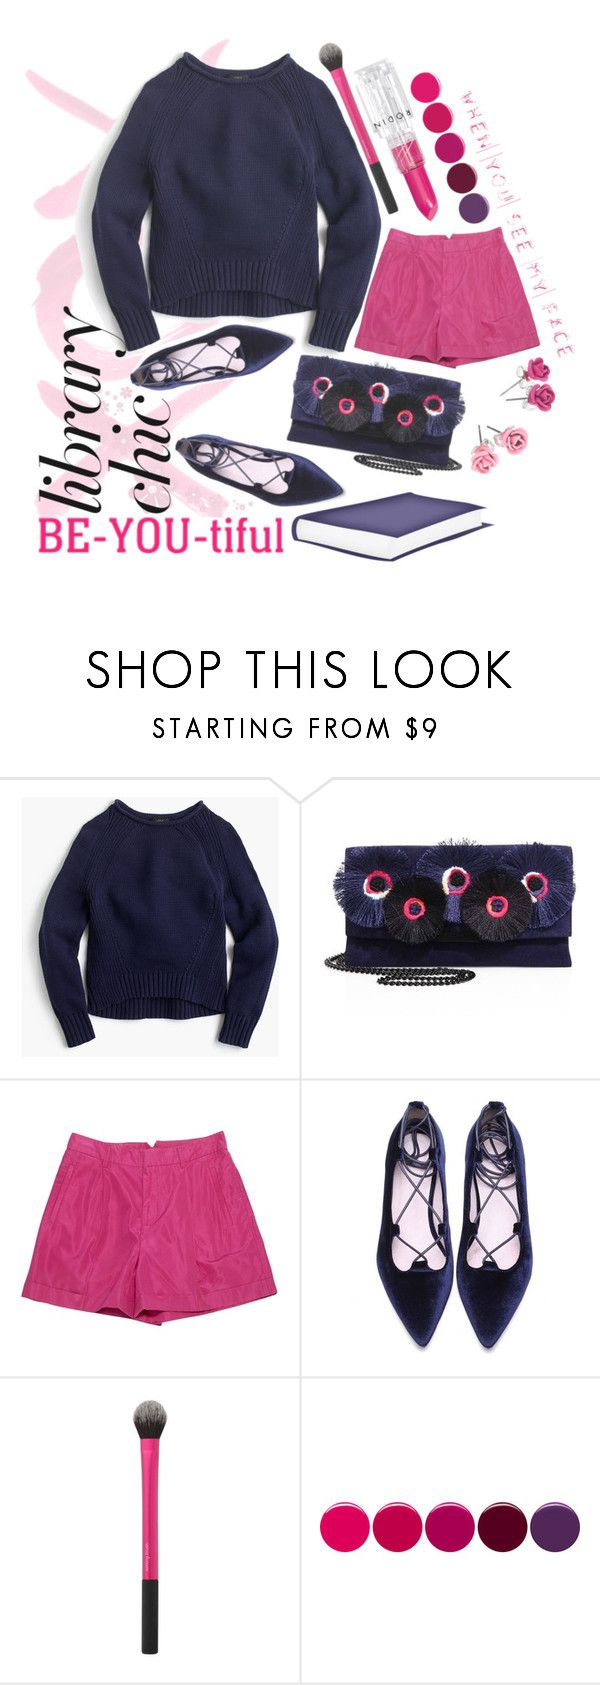 """""""BE-YOU-tiful"""" by dizzier ❤ liked on Polyvore featuring GALA, J.Crew, Loeffler Randall, Ralph Lauren Collection, Deborah Lippmann, Rodin and BRIT*"""